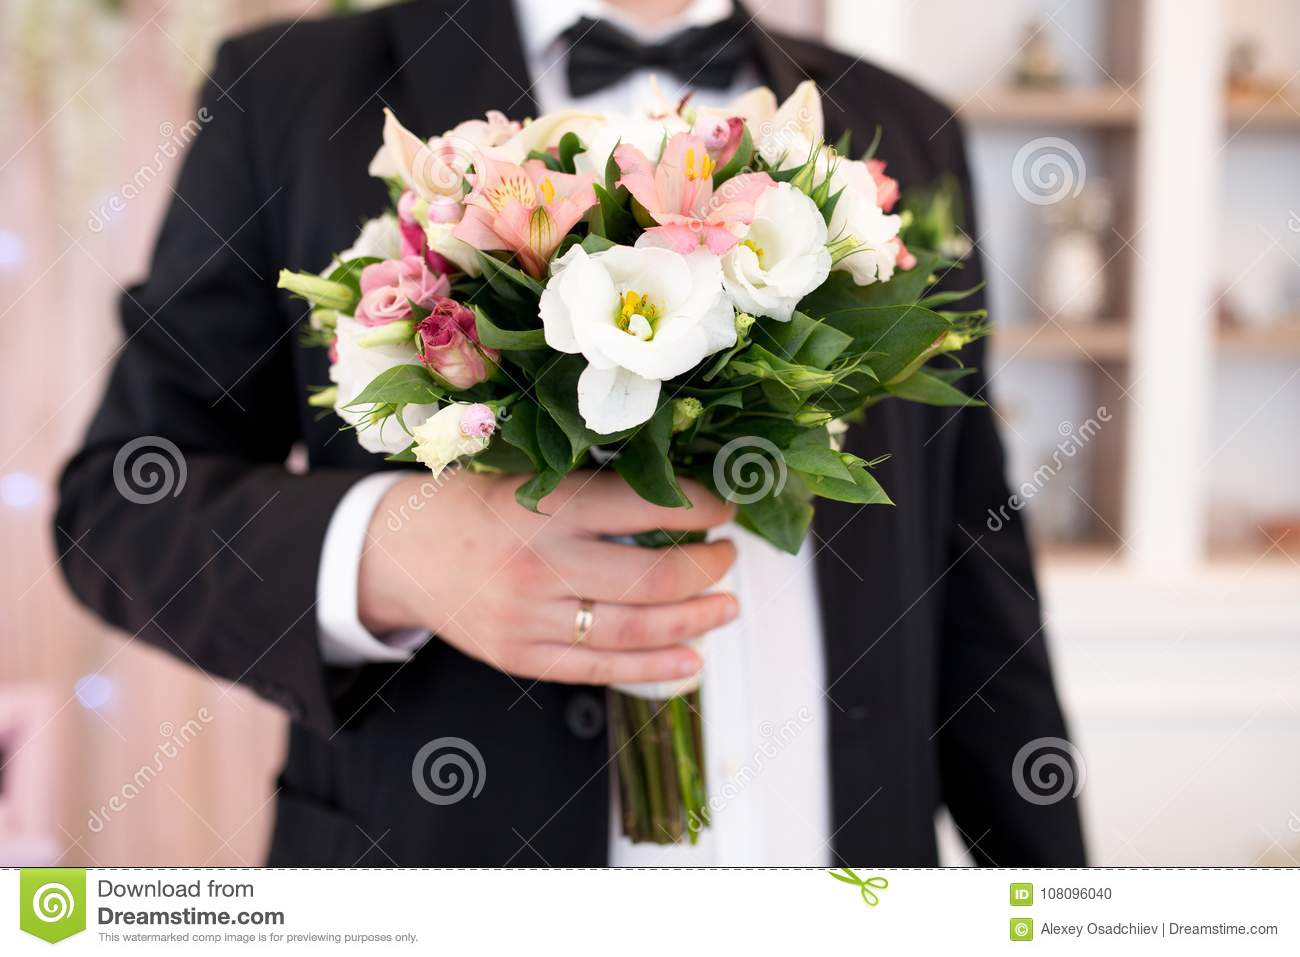 Man with flower bouquet stock photo image of event 108096040 man with flower bouquet izmirmasajfo Gallery